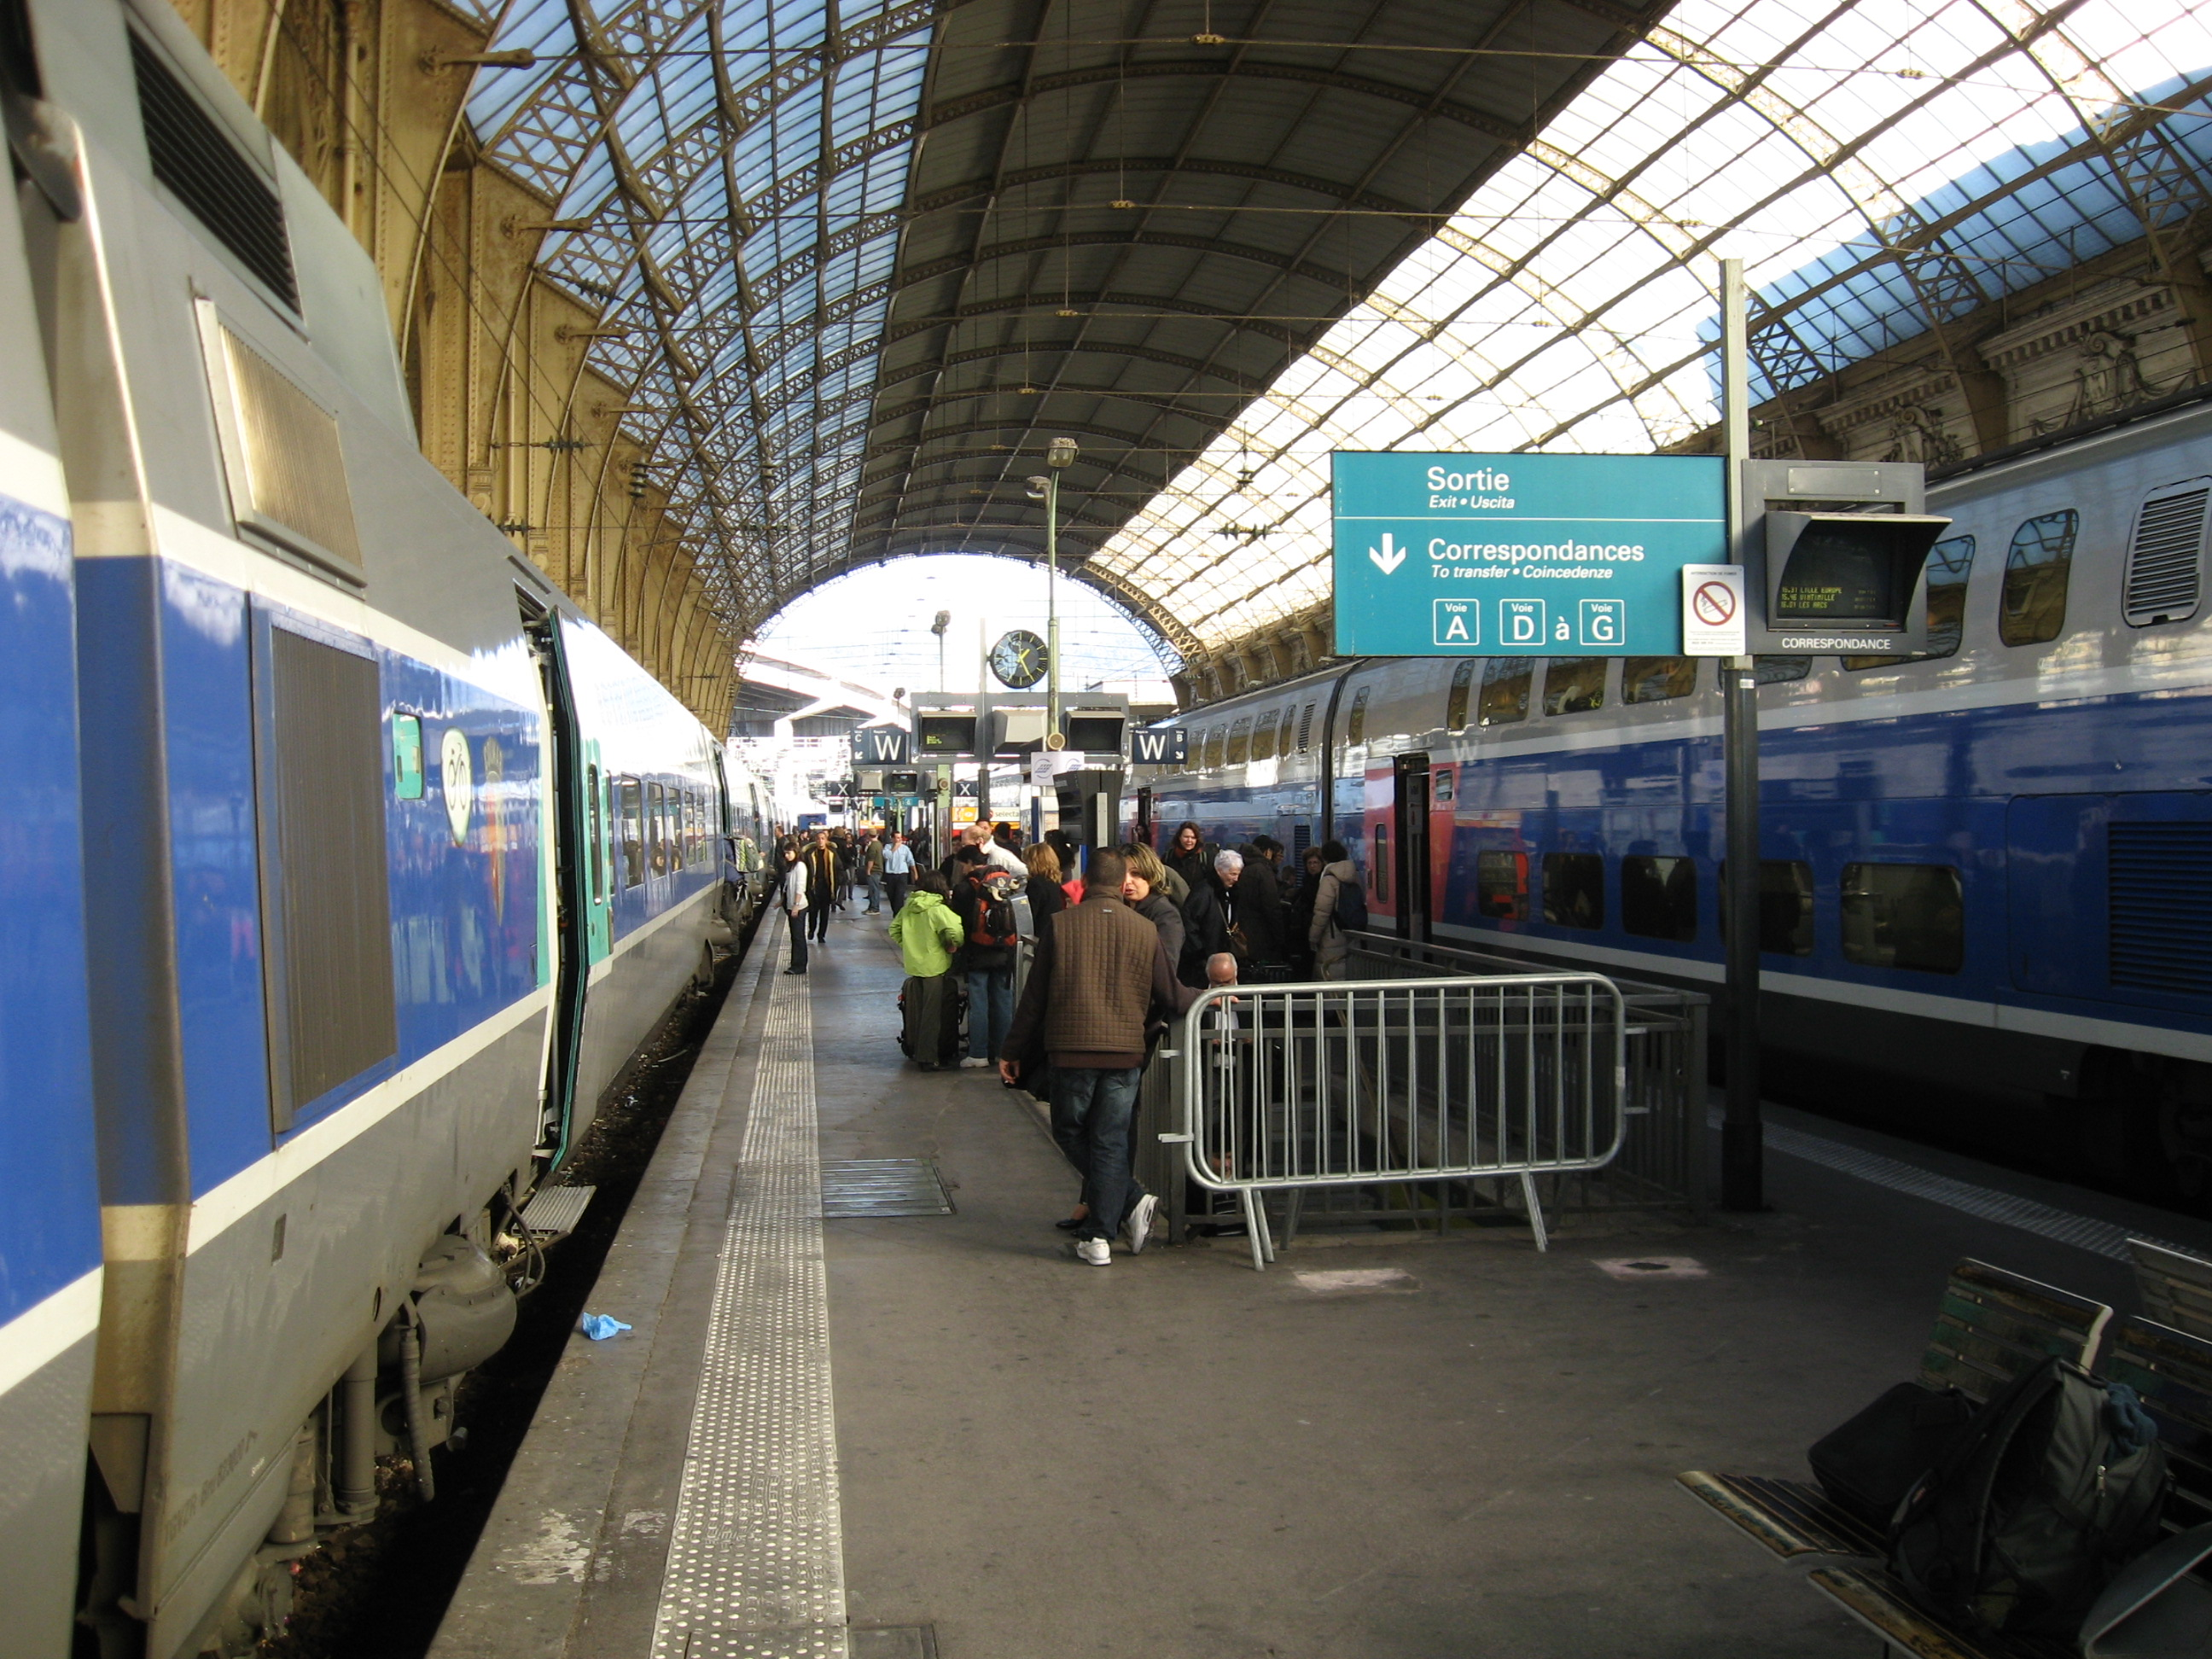 Gare Sncf File Nice Gare Sncf 2008 1 Jpg Wikimedia Commons